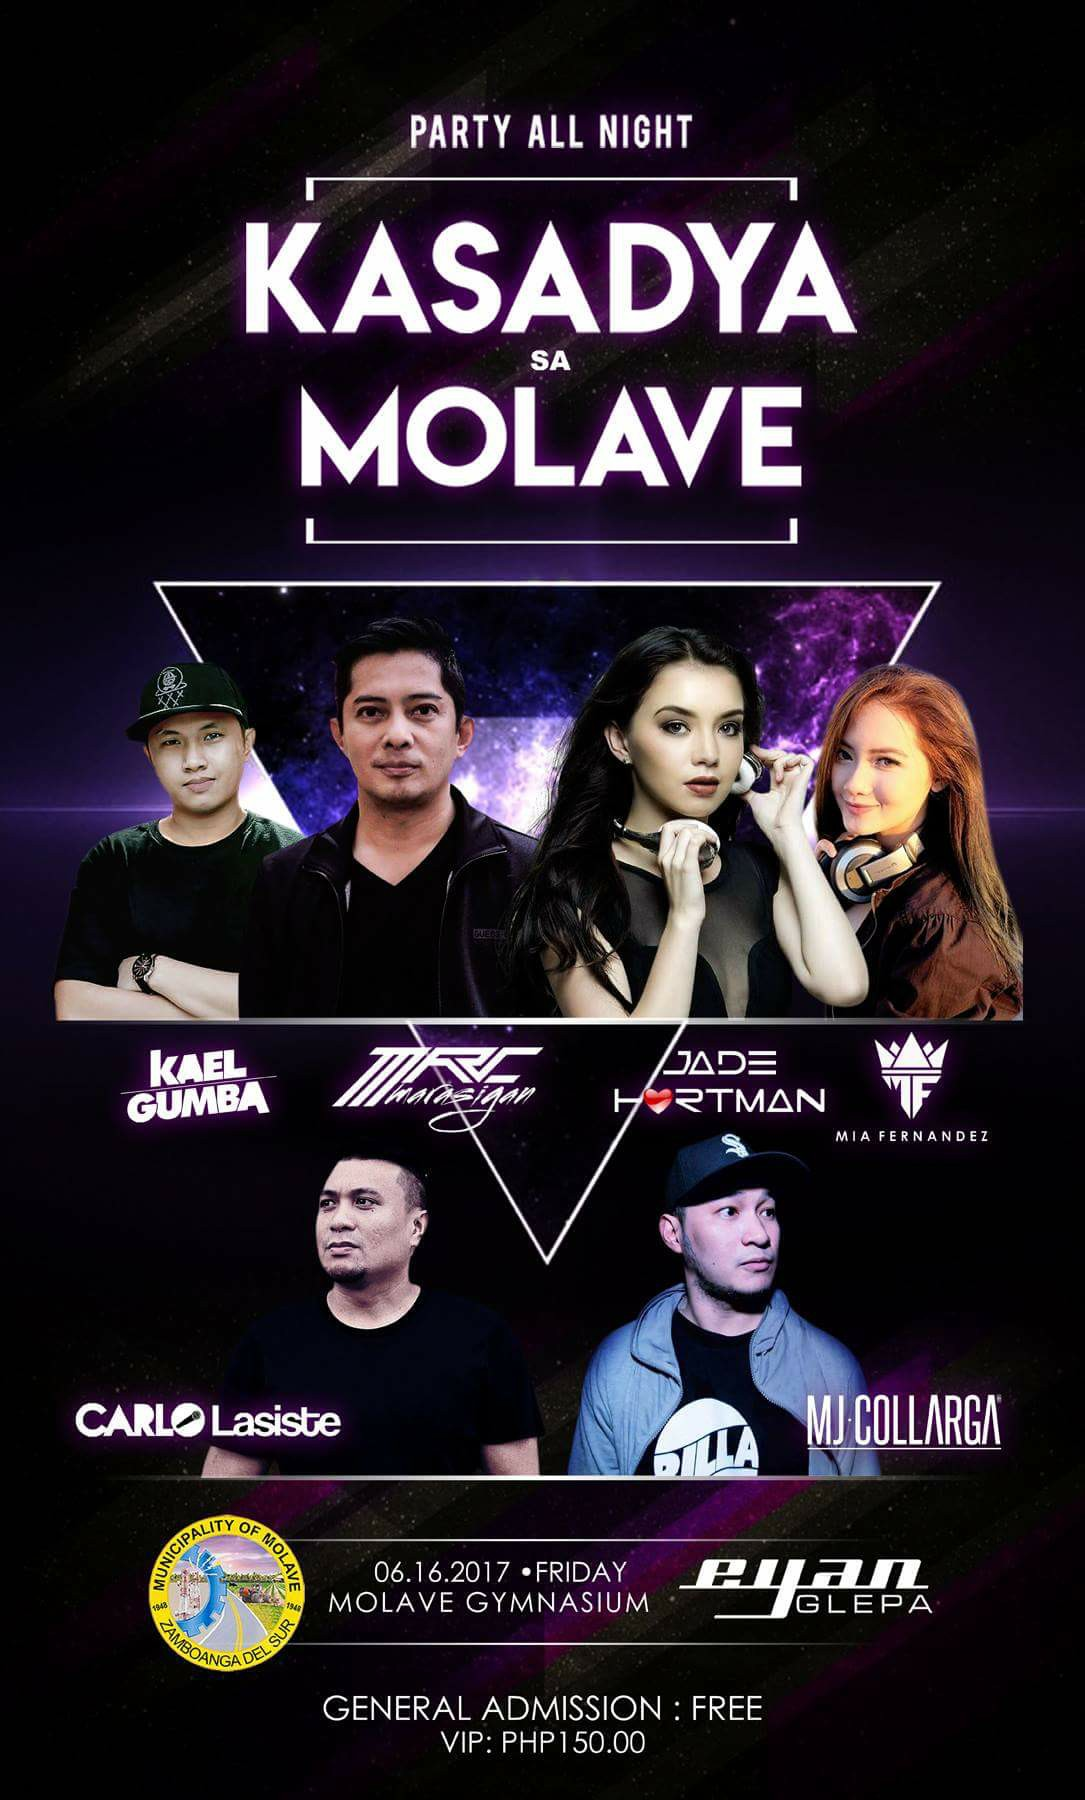 Ian Daryl Antipuesto Glepa Follow · 4 hrs · PROMO ALERT!! Be 1 of the 10 winners of 2 VIP tickets for the Kasadya Sa Molave event this Friday! Simply SHARE this post, TAG your friends and use the HASHTAGS #PartyAllNight and #KasadyaSaMolave The 10 people with the most LIKES will win 2 VIP tickets each!! Do not forget to make your posts public! Winners will be chosen tomorrow at exactly 9AM! Good Luck Guys! Get Sharing! ---- Ian Daryl Antipuesto Glepa Follow · June 6 · We bring you another solid line up for this year's Kasadya sa Molave! #partyallnight as we celebrate the 69th Araw ng Molave with music from some of the best in the business! General Admission is FREE but you can party at the VIP section for PHP150.00 with a complimentary cocktail! Bar partner: Vine Molave — in Molave, Zamboanga del Sur.